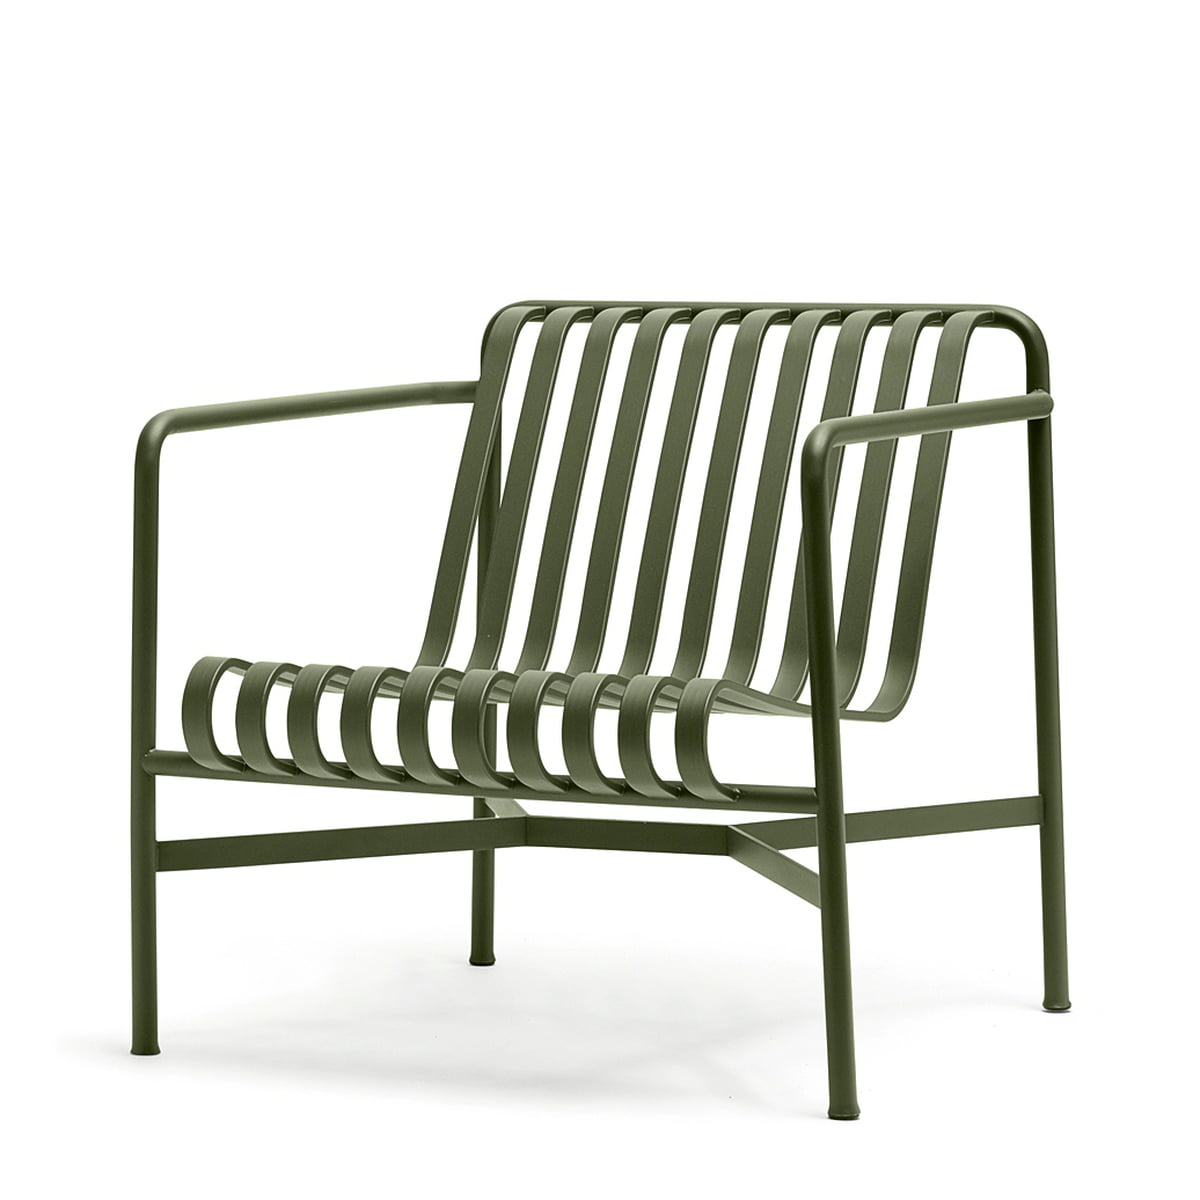 The Palissade Lounge Chair Low By Hay In Olive